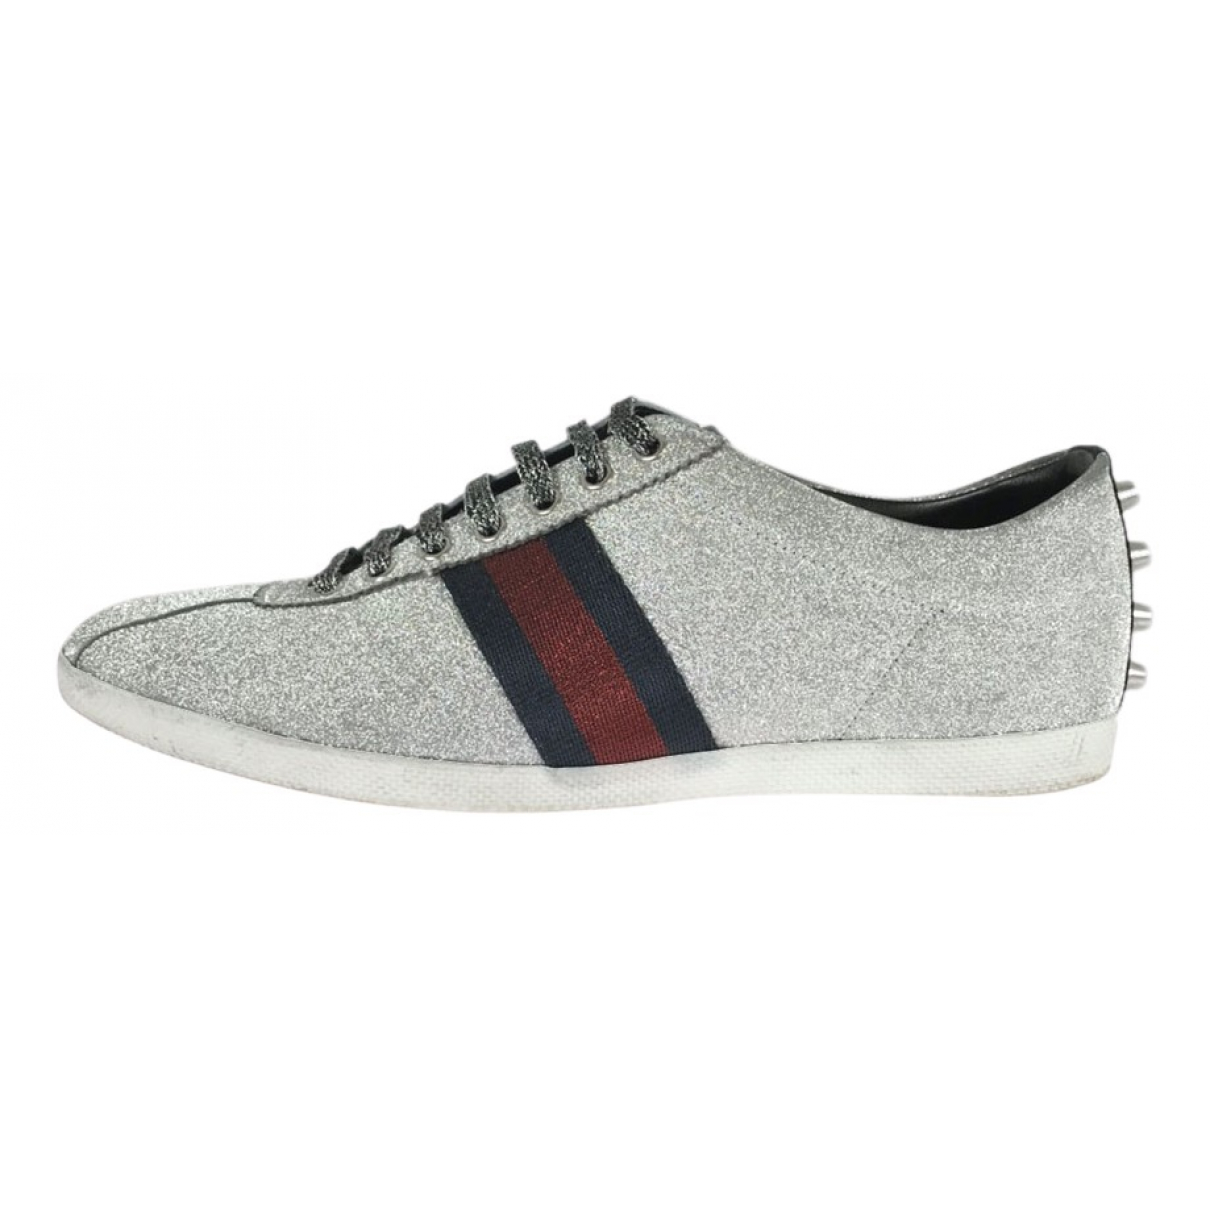 Gucci \N Sneakers in  Silber Leinen